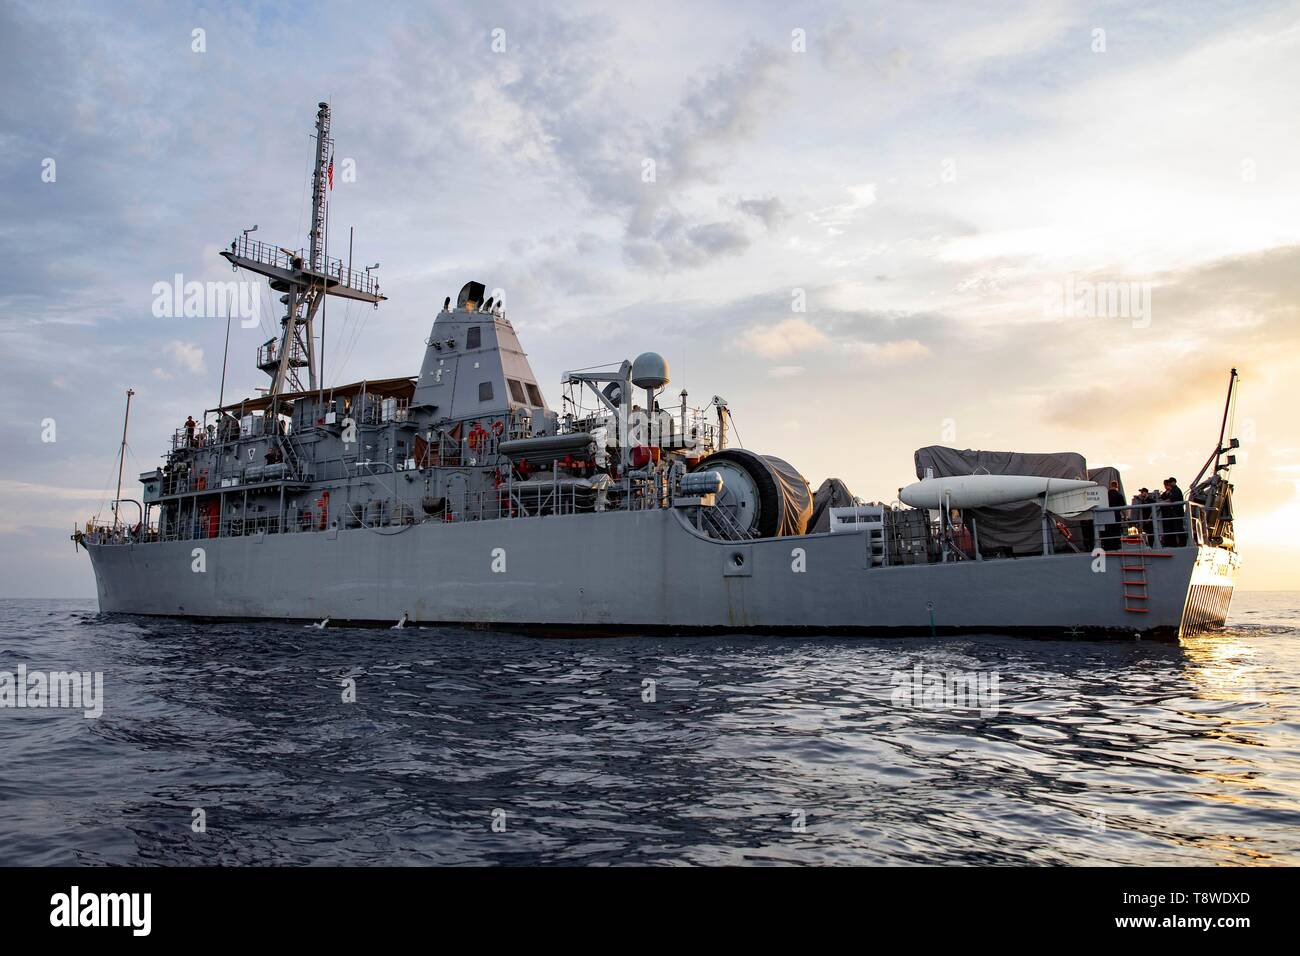 190508-N-AD347-1289 SOUTH CHINA SEA (May 8, 2019) The Avenger-class mine countermeasures ship USS Pioneer (MCM 9) prepares to receive Sailors from a ridged hull inflatable boat. Both Pioneer and Patriot, part of Mine Countermeasures Squadron 7, are operating in the U.S. 7th Fleet area of operations to enhance interoperability with partners and serve as a ready-response platform for contingency operations. (U.S. Navy photo by Lt. j.g. Alexander Fairbanks) - Stock Image